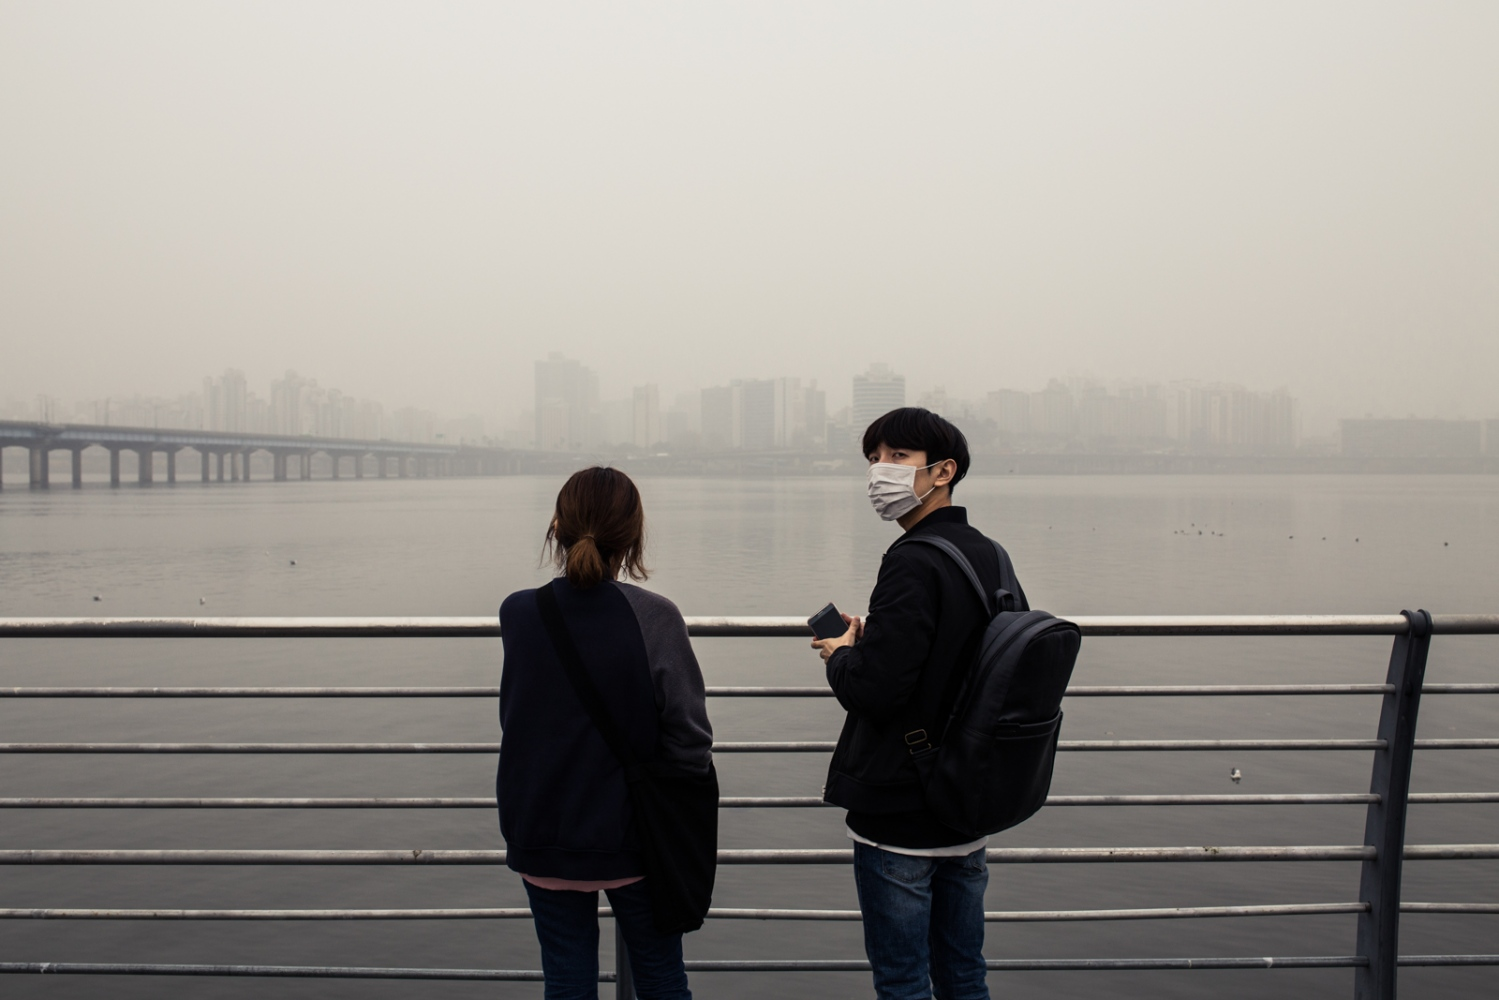 The unintended consequences of development: air pollution in South Korea. Korea suffers from mass Chinese production across the Yellow Sea where smog is often blown towards the peninsula. However, much of the smog is also attributed to dirty industries and manufacturing within Korea. Many outdoor air pollutants such as particulate matter, ozone, lead, and carbon monoxide are sourced from the burning of fossil fuels such as coal and oil, both precursors to climate change, which are staples of the energy diet in developed and developing nations. WHO estimates that outdoor air pollution is linked to over 3 million deaths per year. Countries like Australia and the USA have implemented effective policies and technologies to combat air pollution that has contributed to clean air. However, many have argued that developed nations have simply offloaded their manufacturing and industry to poorer nations. Here a masked couple attempt to enjoy Seoul's skyline along the Han Riveralmost entirely obscured by thick smog.